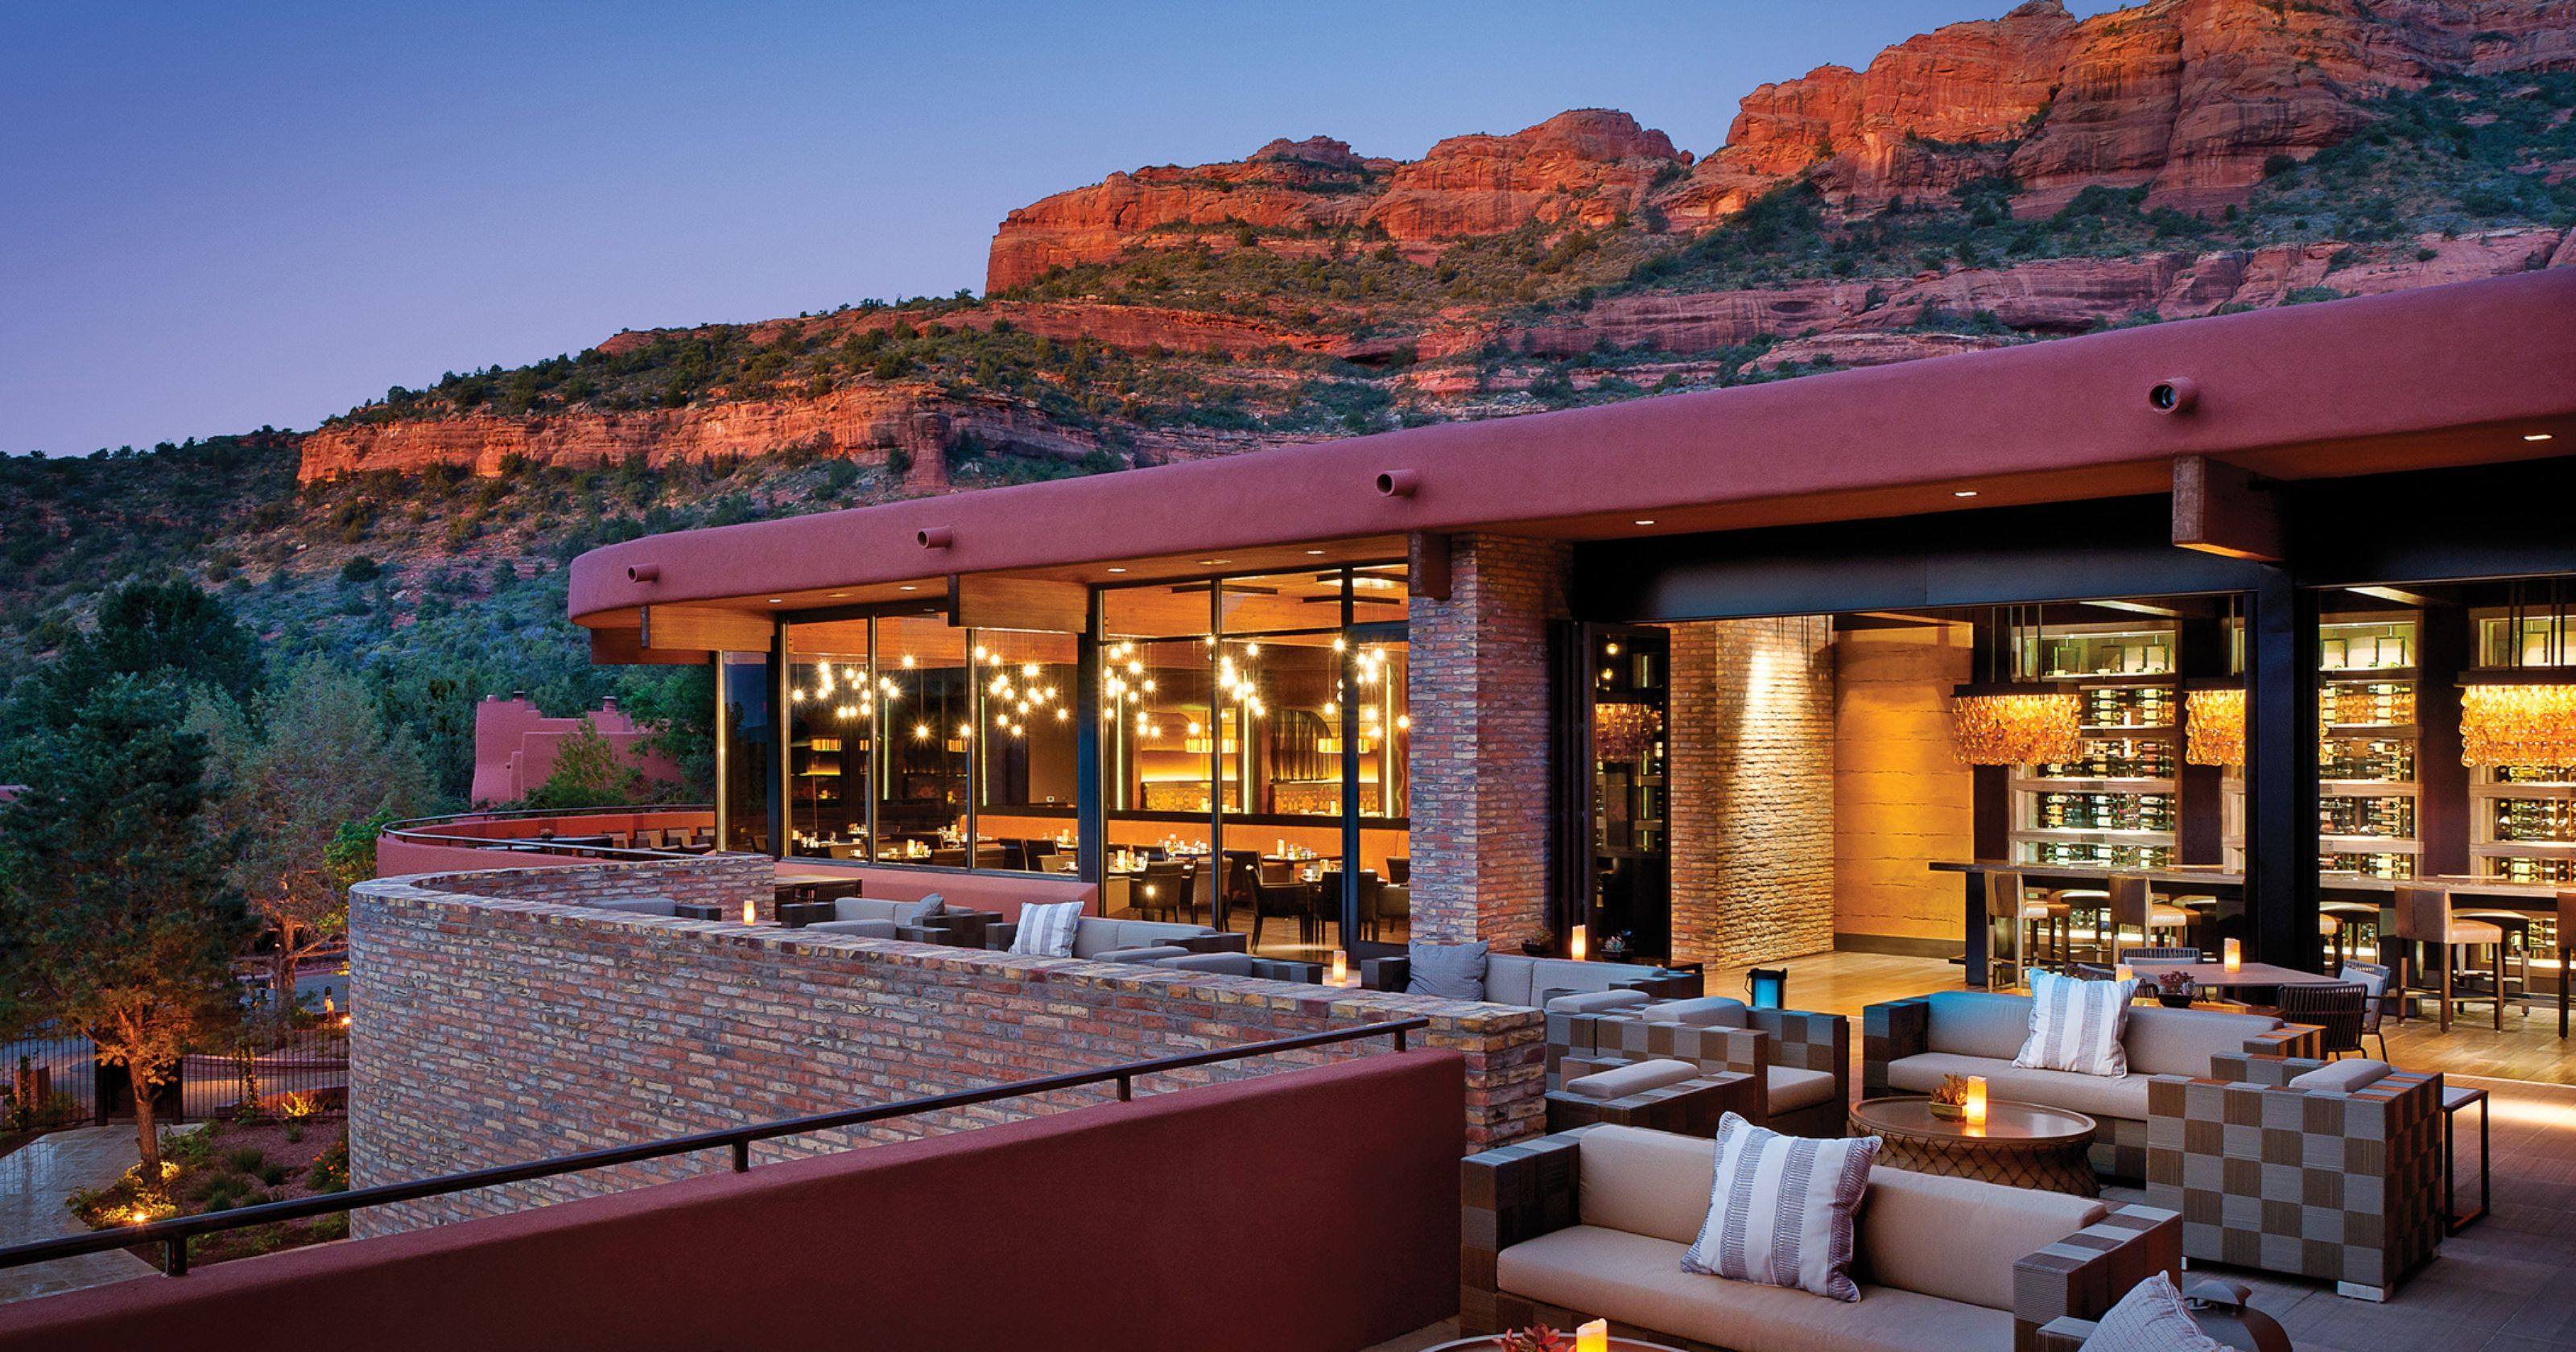 These hotels, cabins and bedandbreakfasts show off the